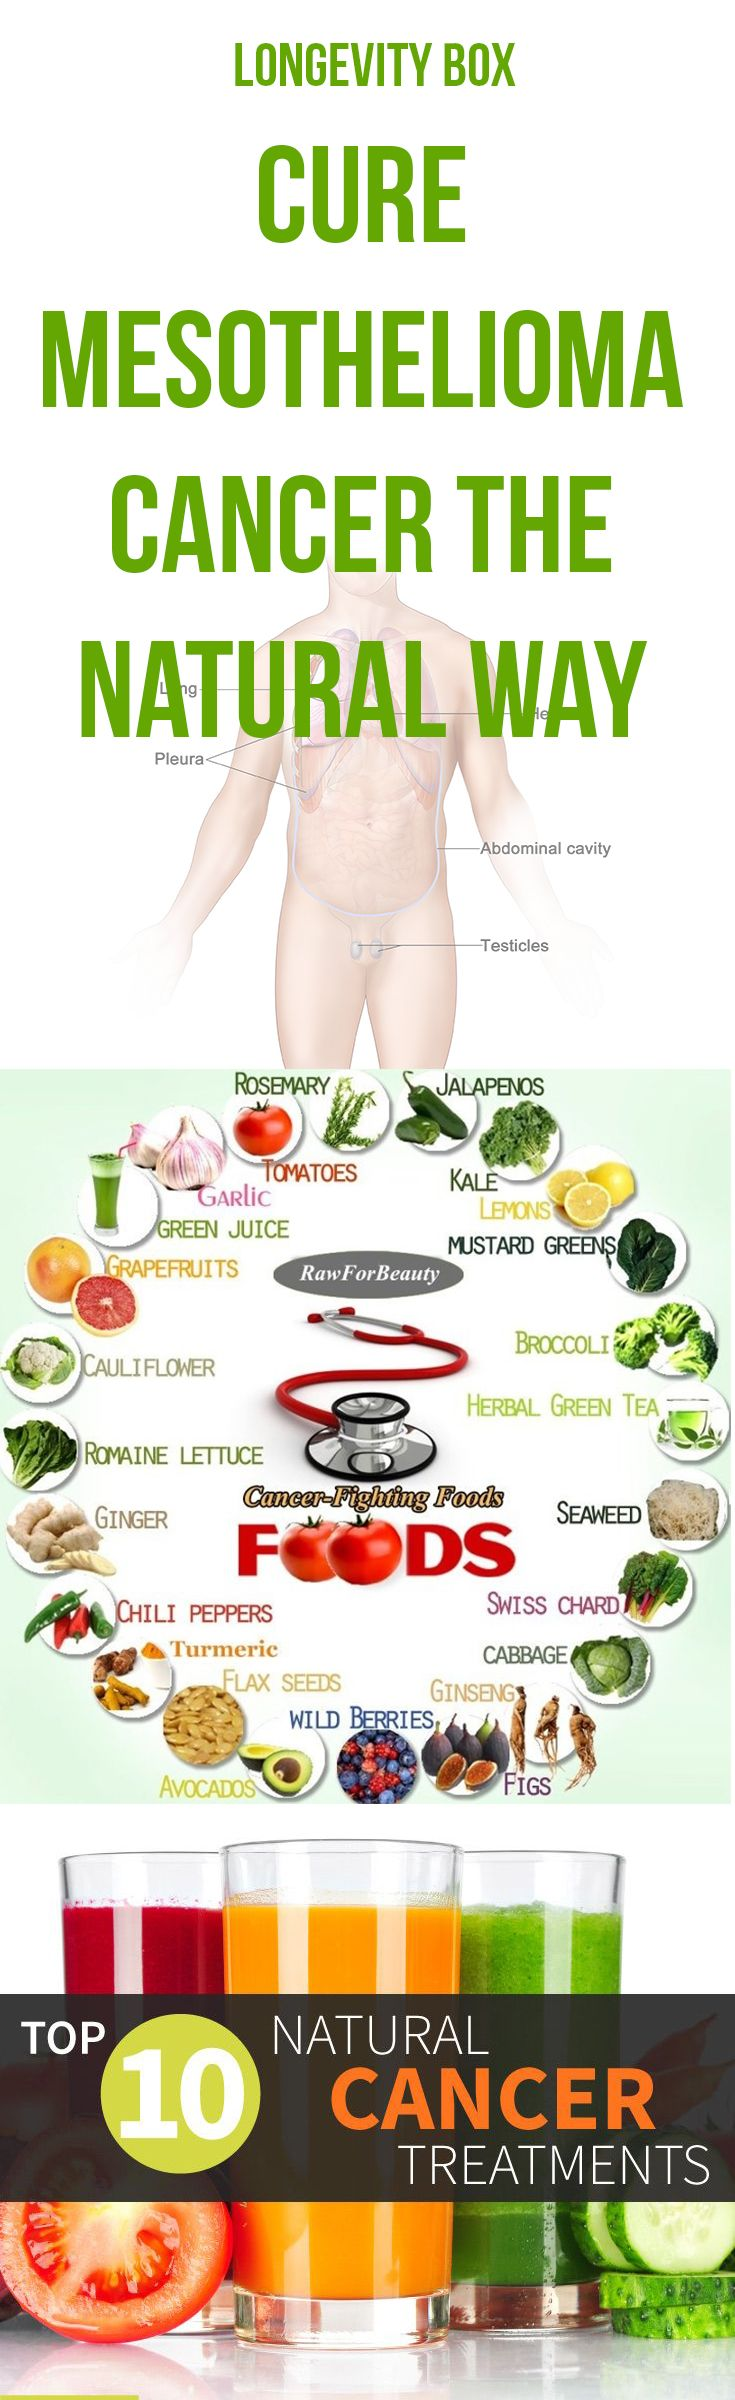 best health cancer images health foods  1392 best health cancer images health foods healthy nutrition and cancer cure